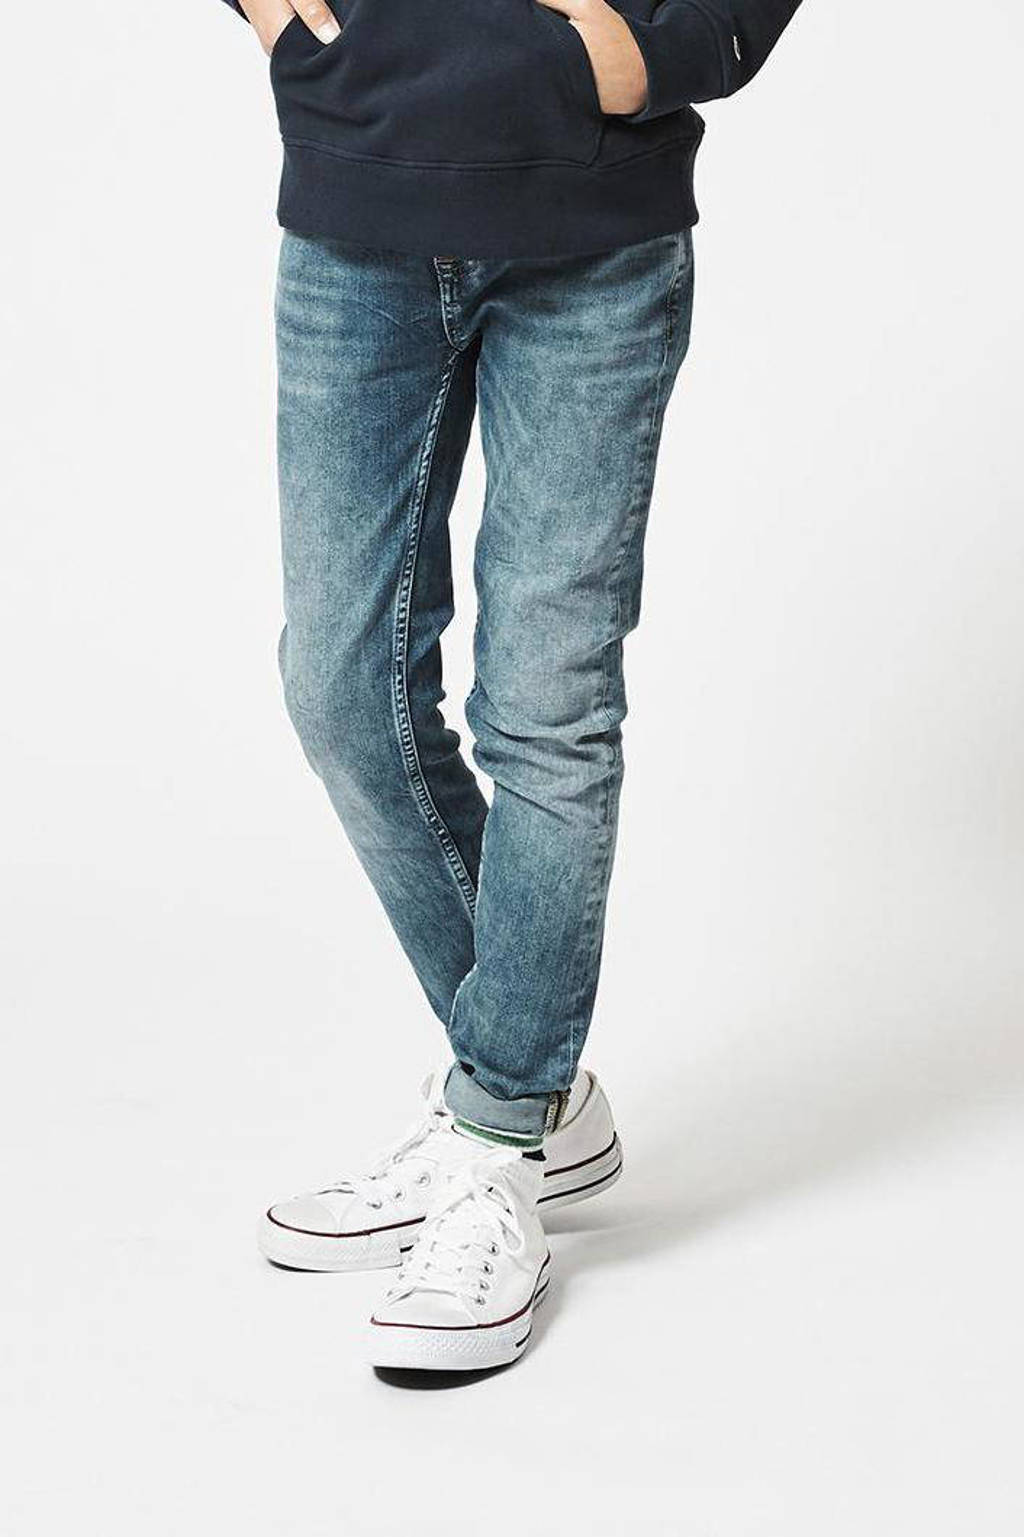 America Today Junior skinny jeans Keanu Jr. washed blue wash, Washed blue wash